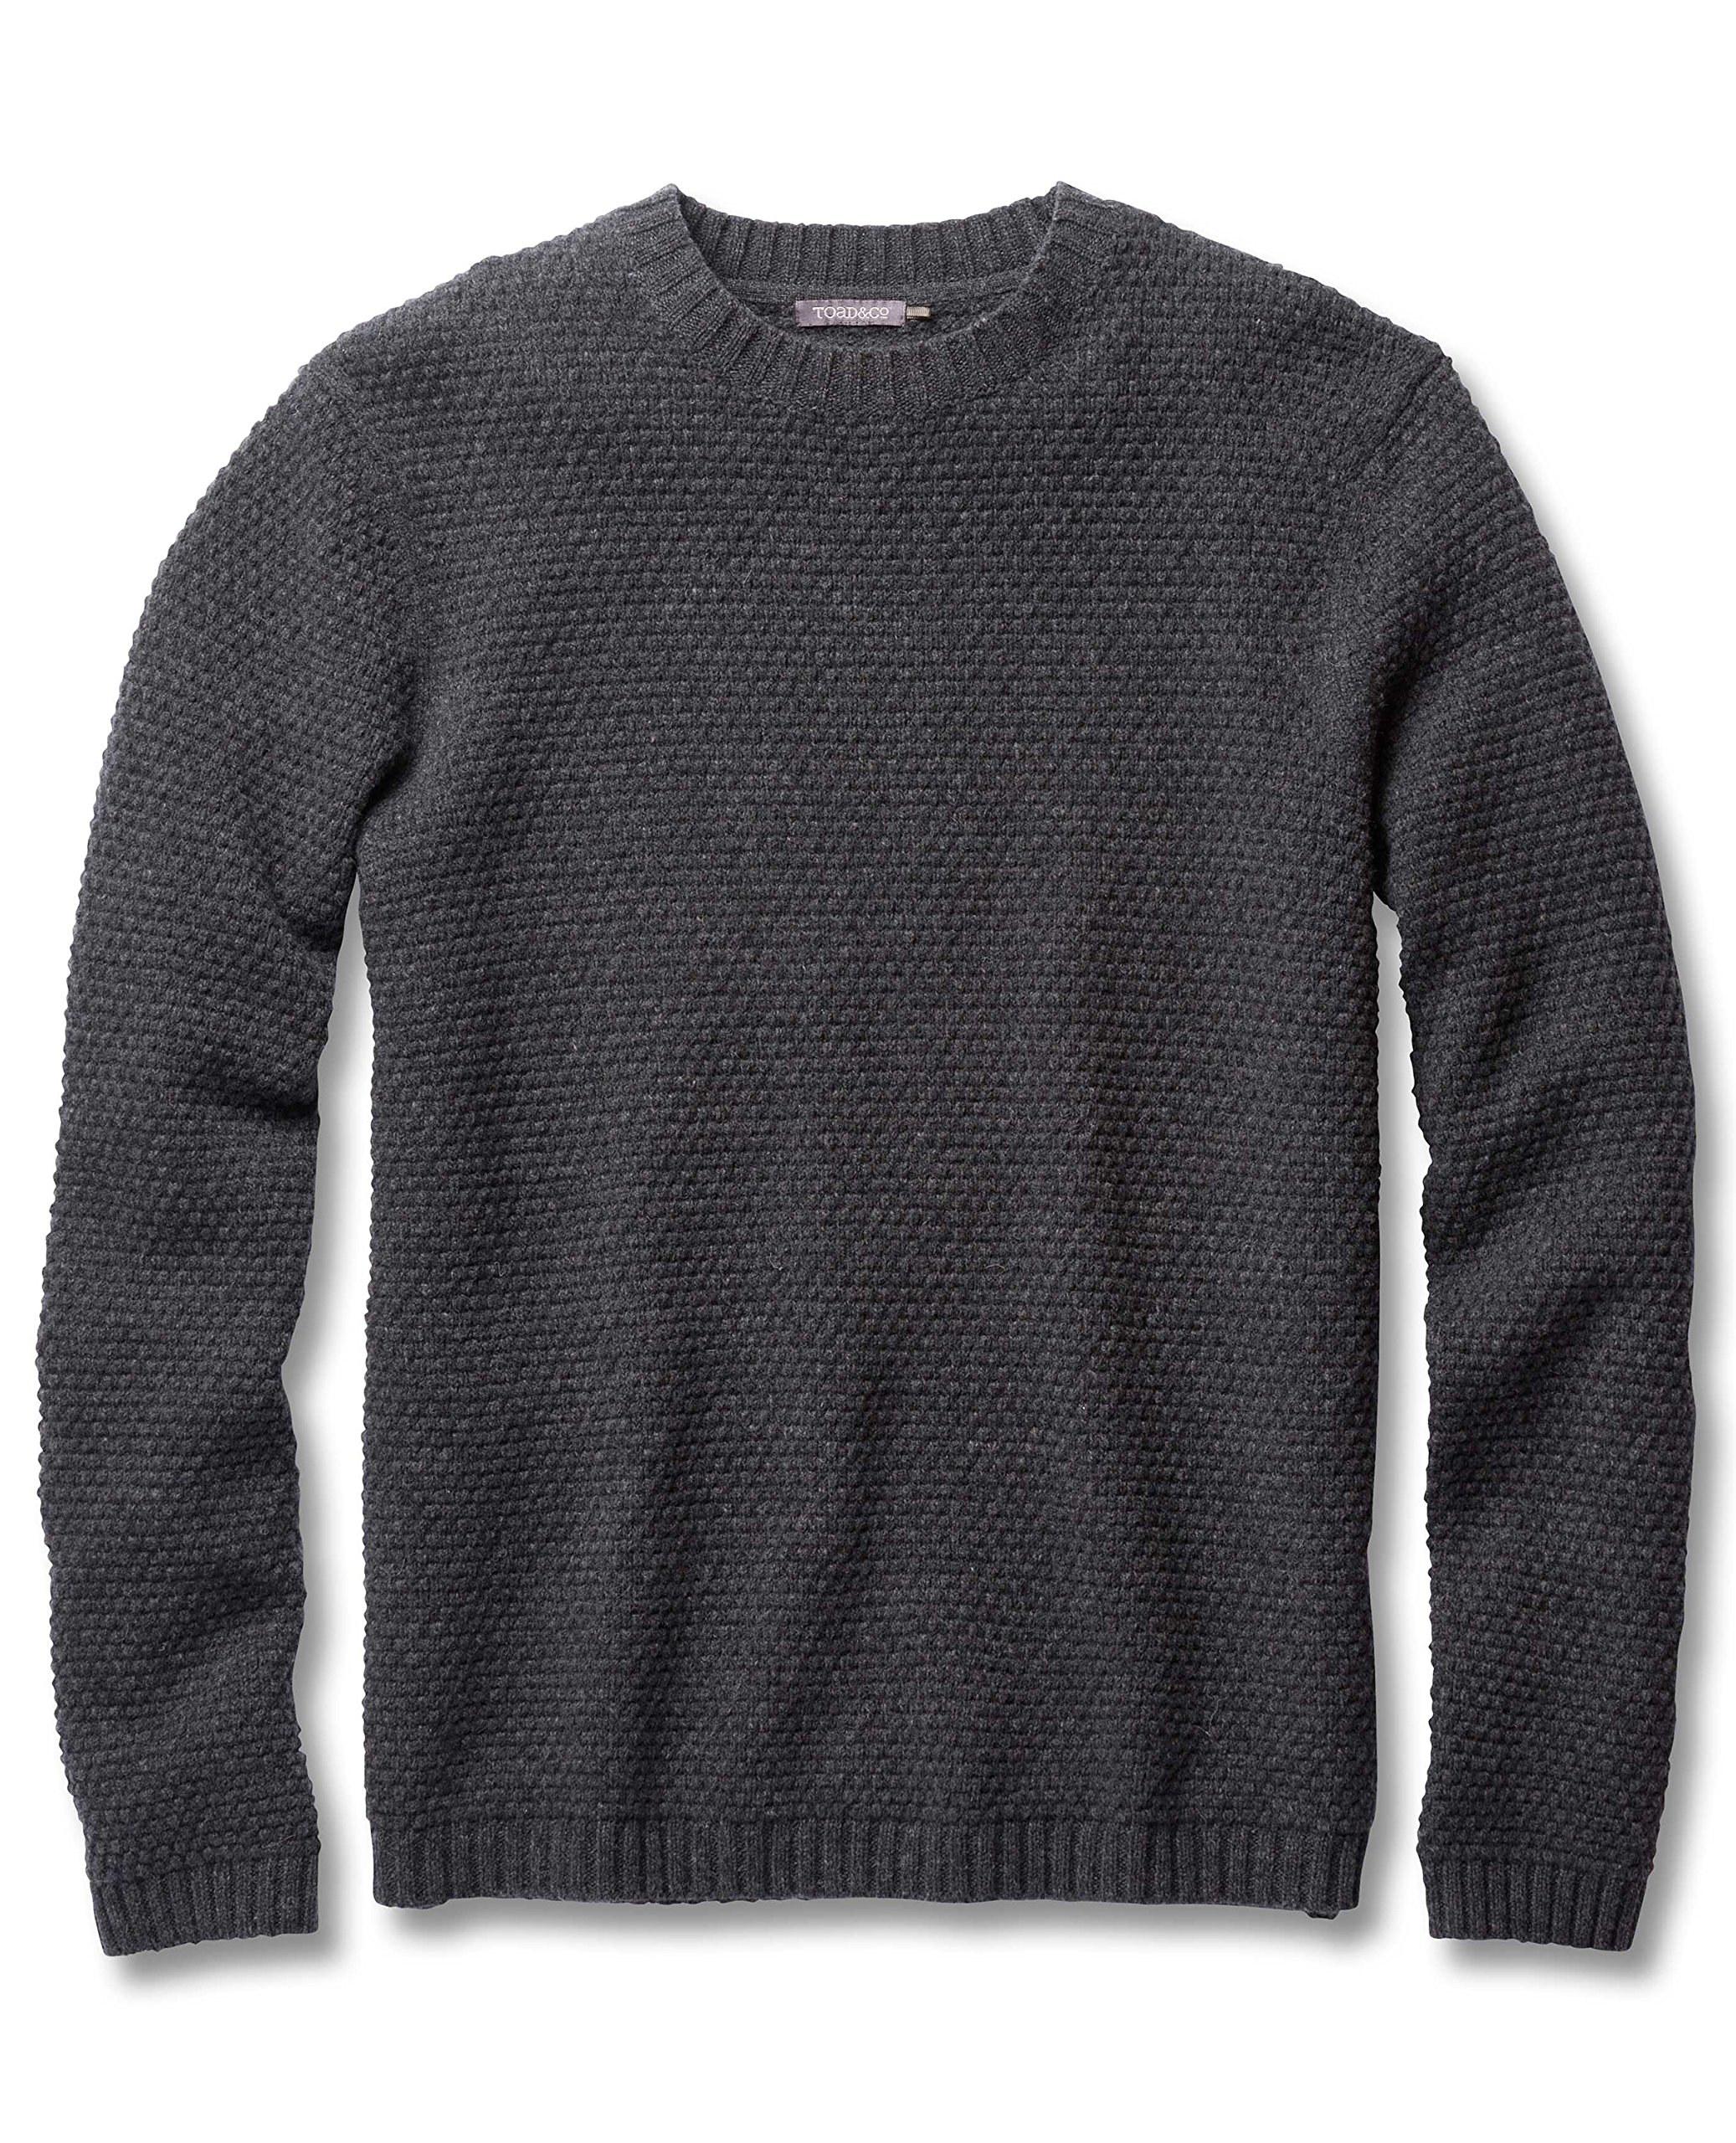 Toad&Co Men's Malamute Crew Sweater, Charcoal Heather, X-Large